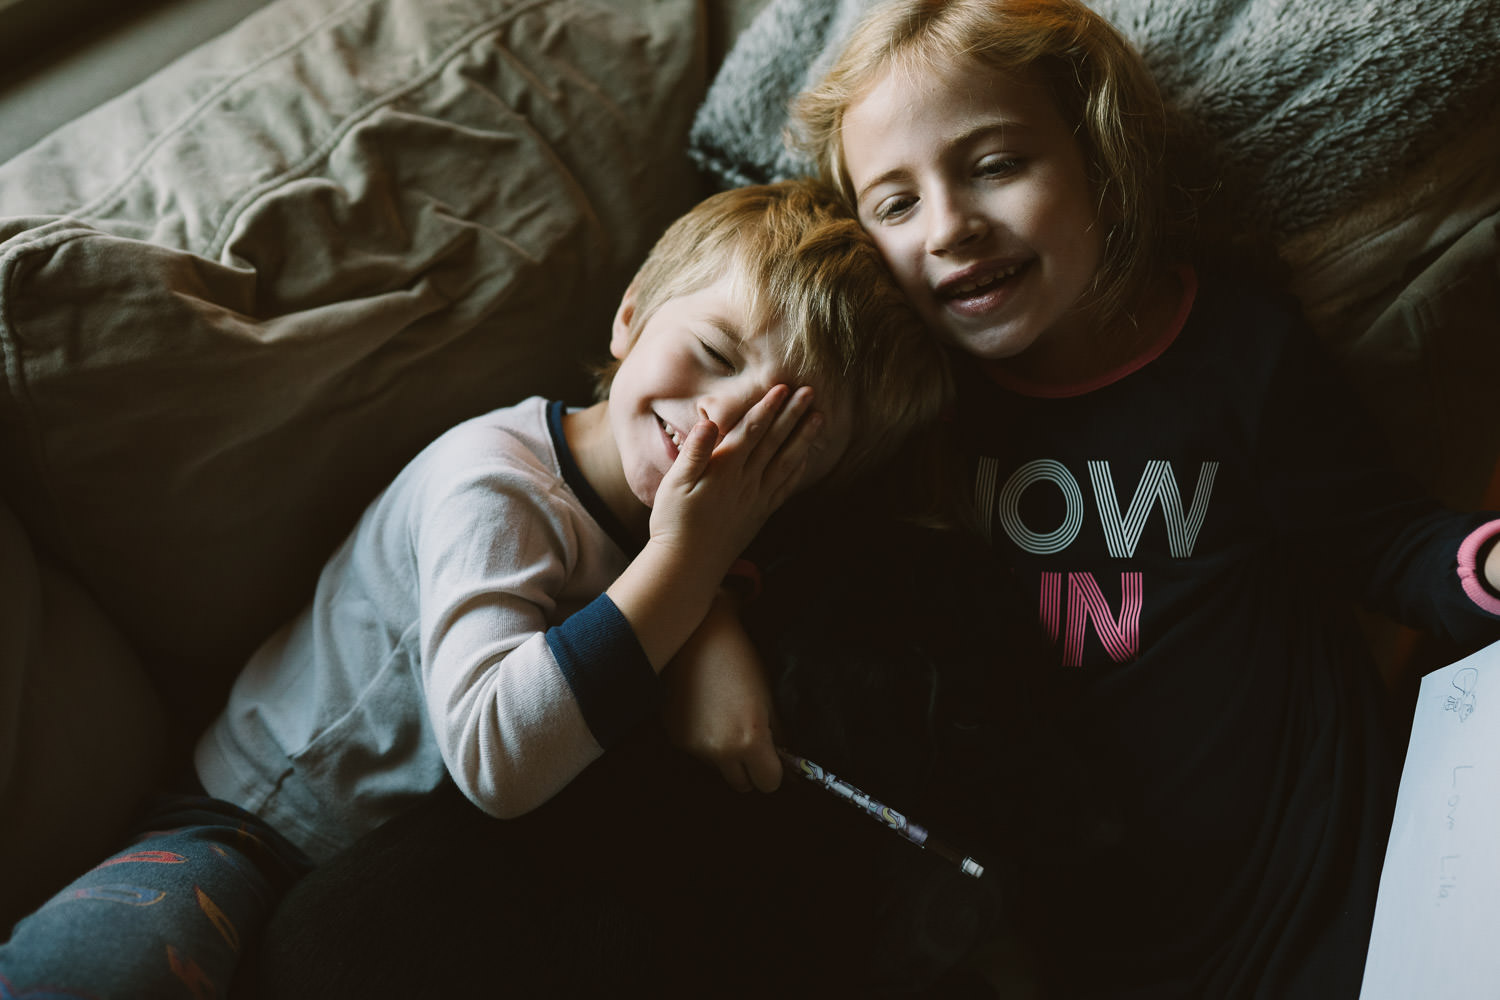 Two children snuggle on their couch.